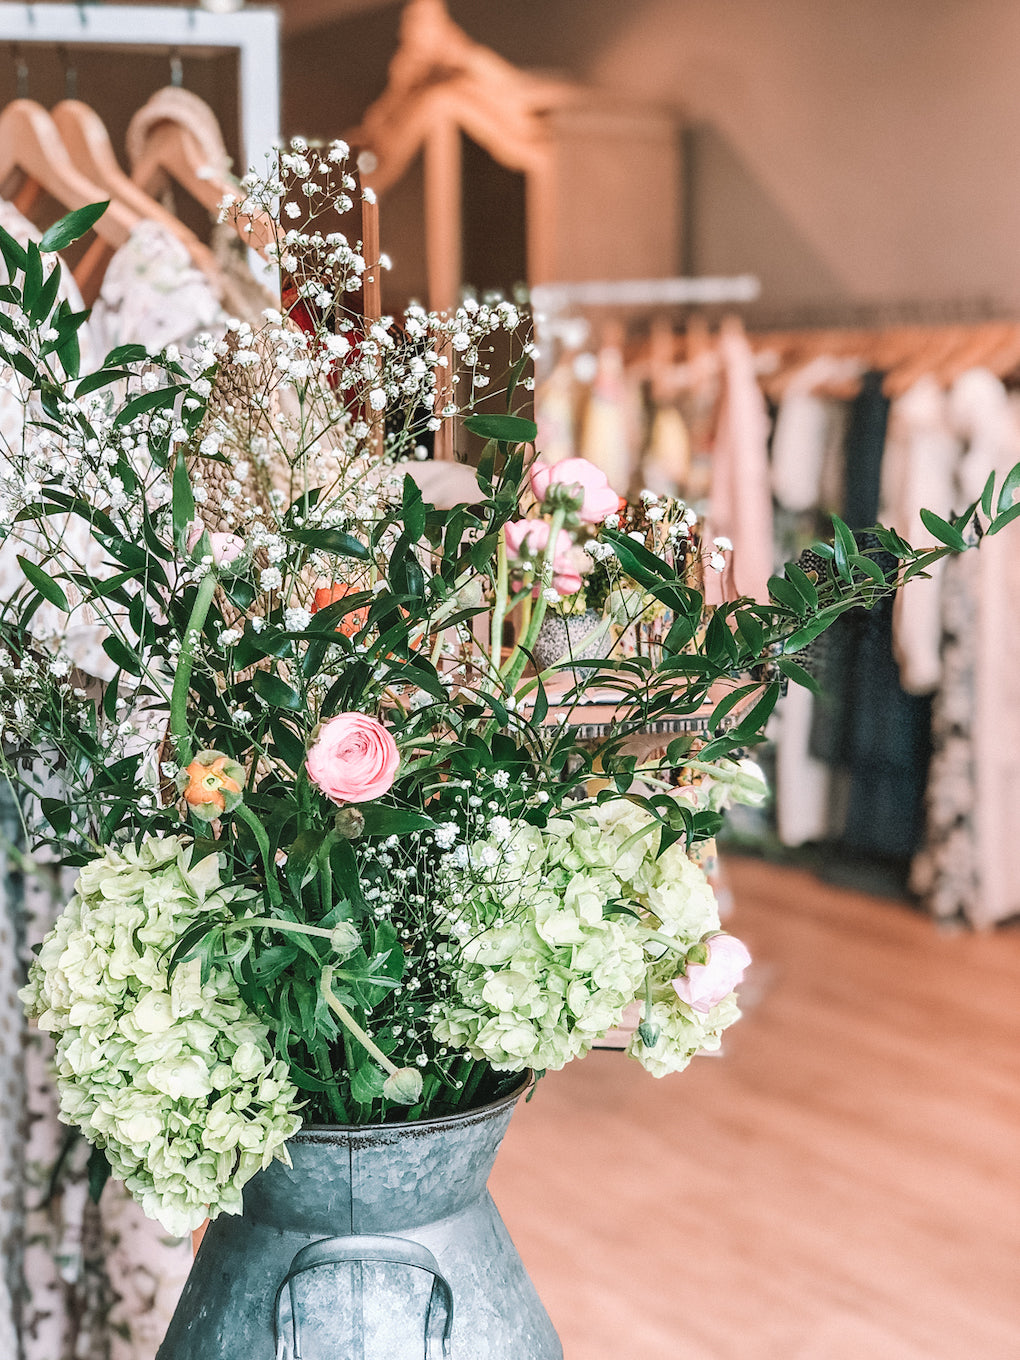 Fleurs of the Week at our SENLIS Robertson Boutique